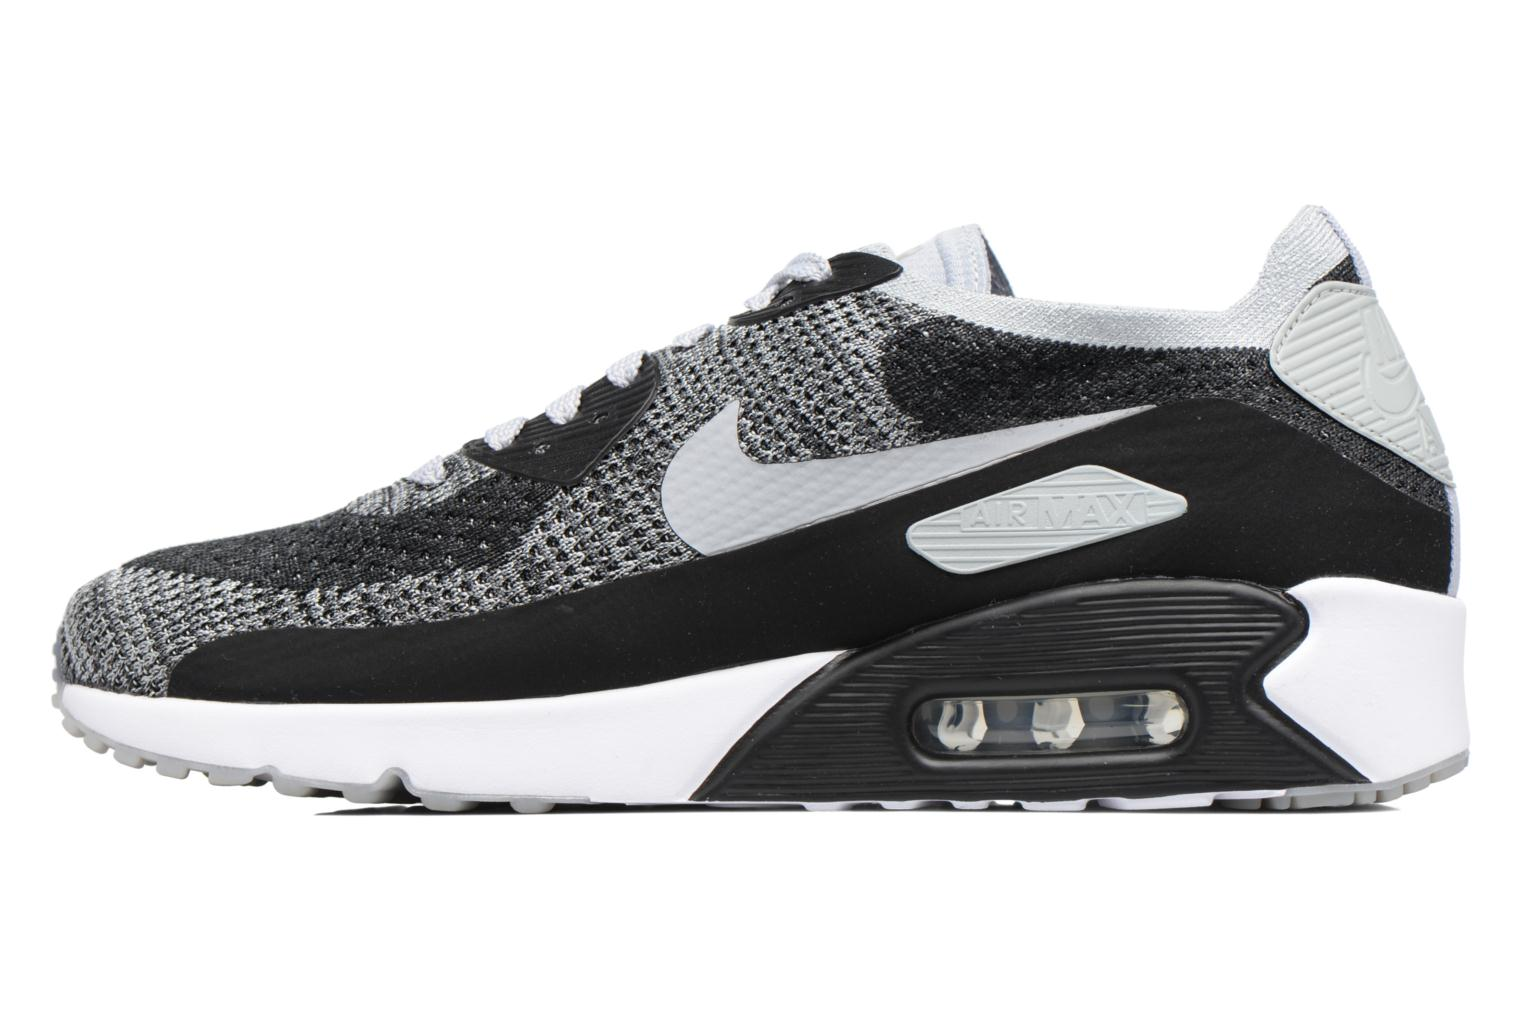 Air Max 90 Ultra 2.0 Flyknit Black/Wolf Grey-Pure Platinum-Dark Grey